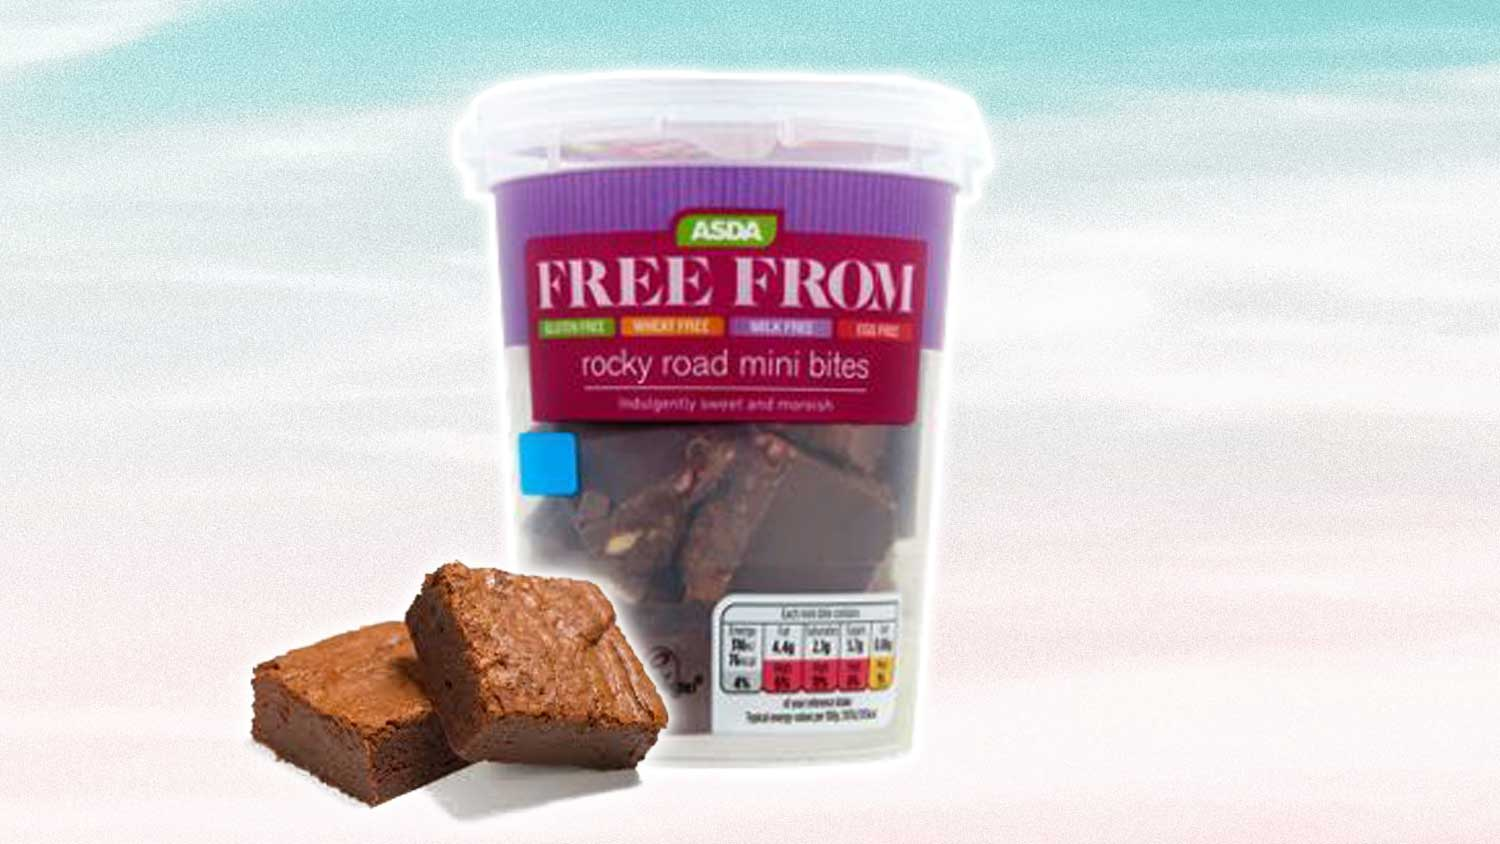 Vegan and Gluten-Free Rocky Road Is Now a Thing at Asda